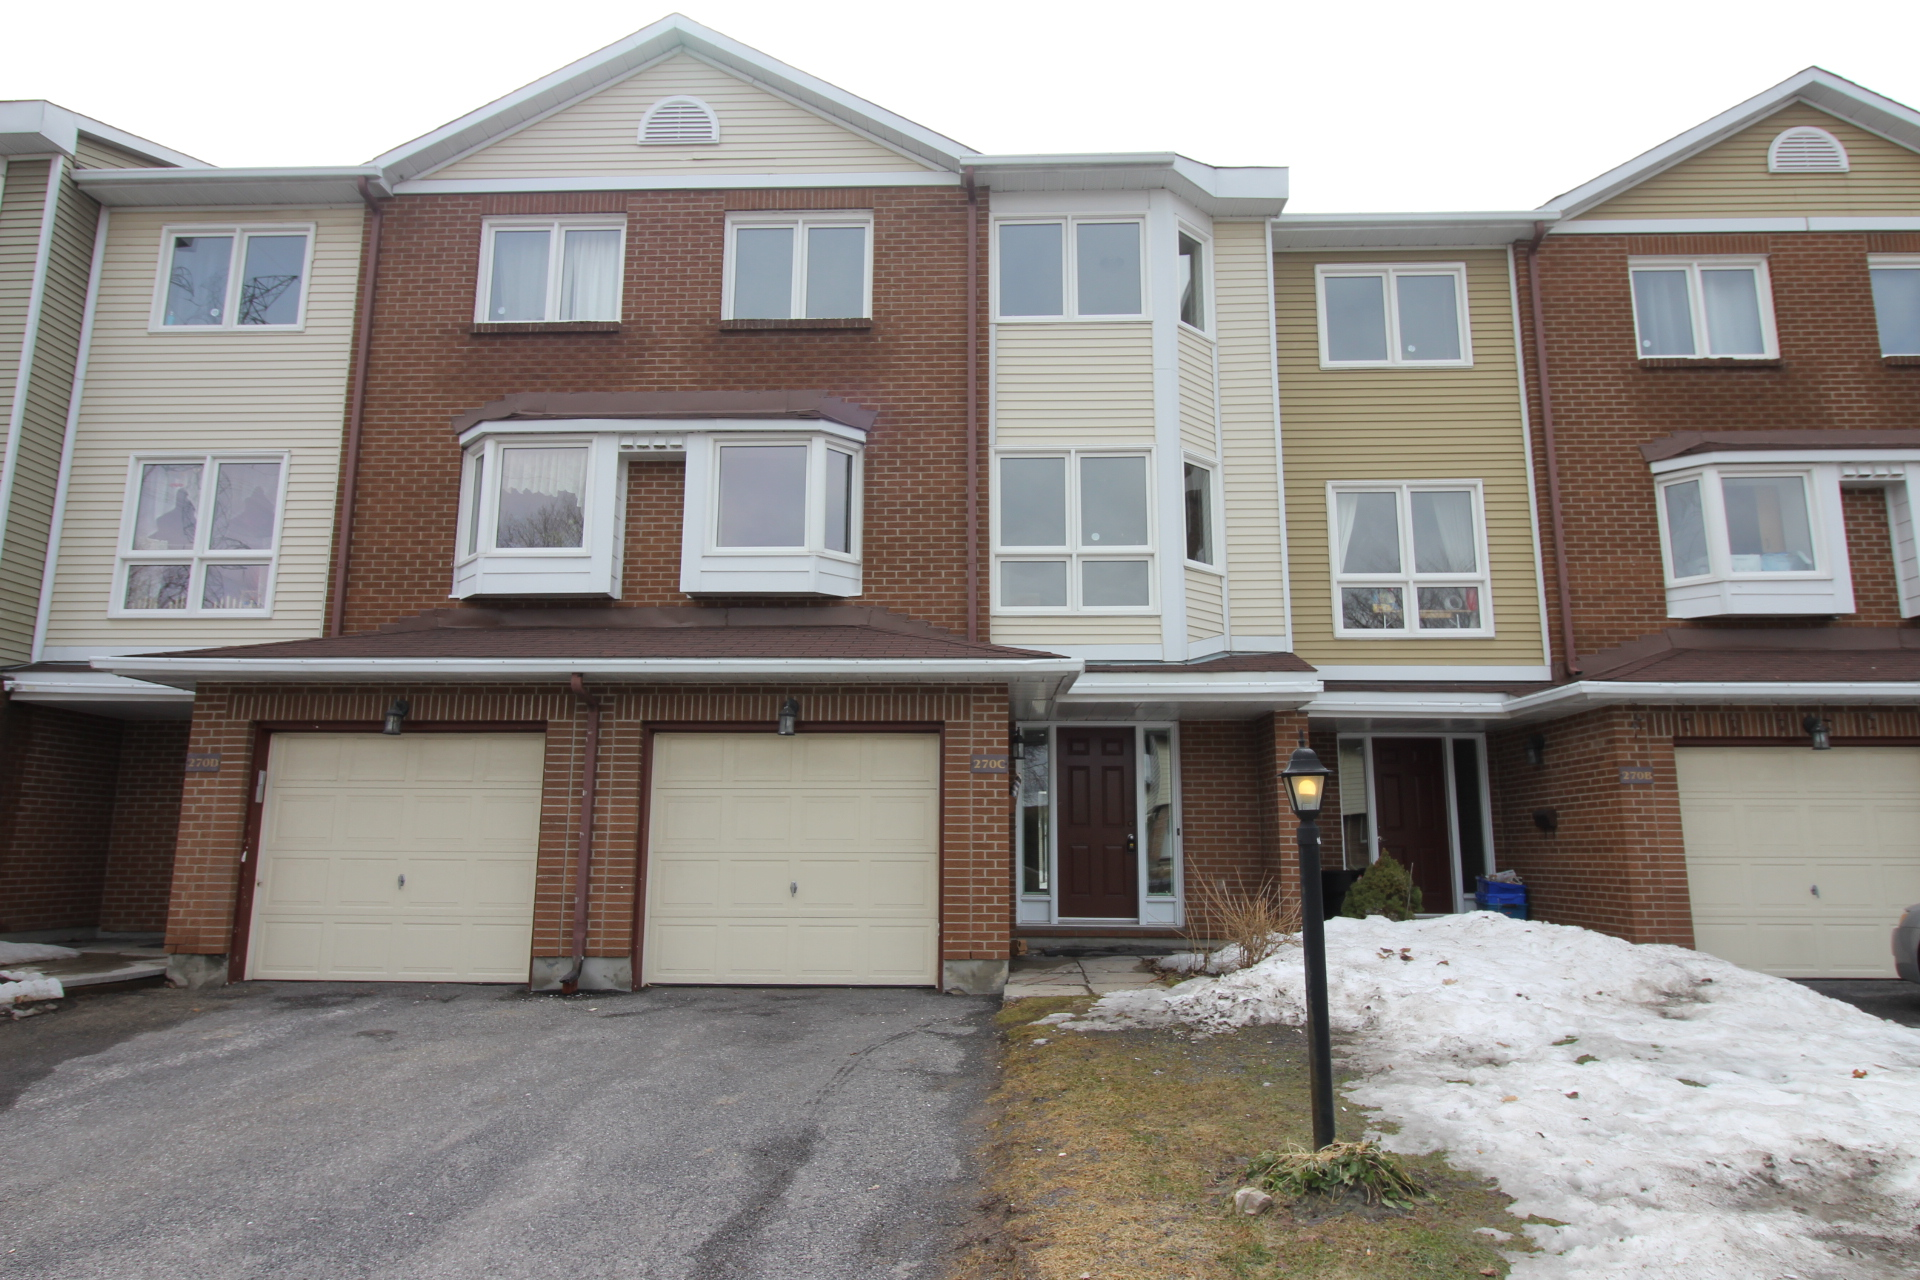 270C Dalehurst Dr - Spacious Condo Townhouse in popular Tanglewood area!